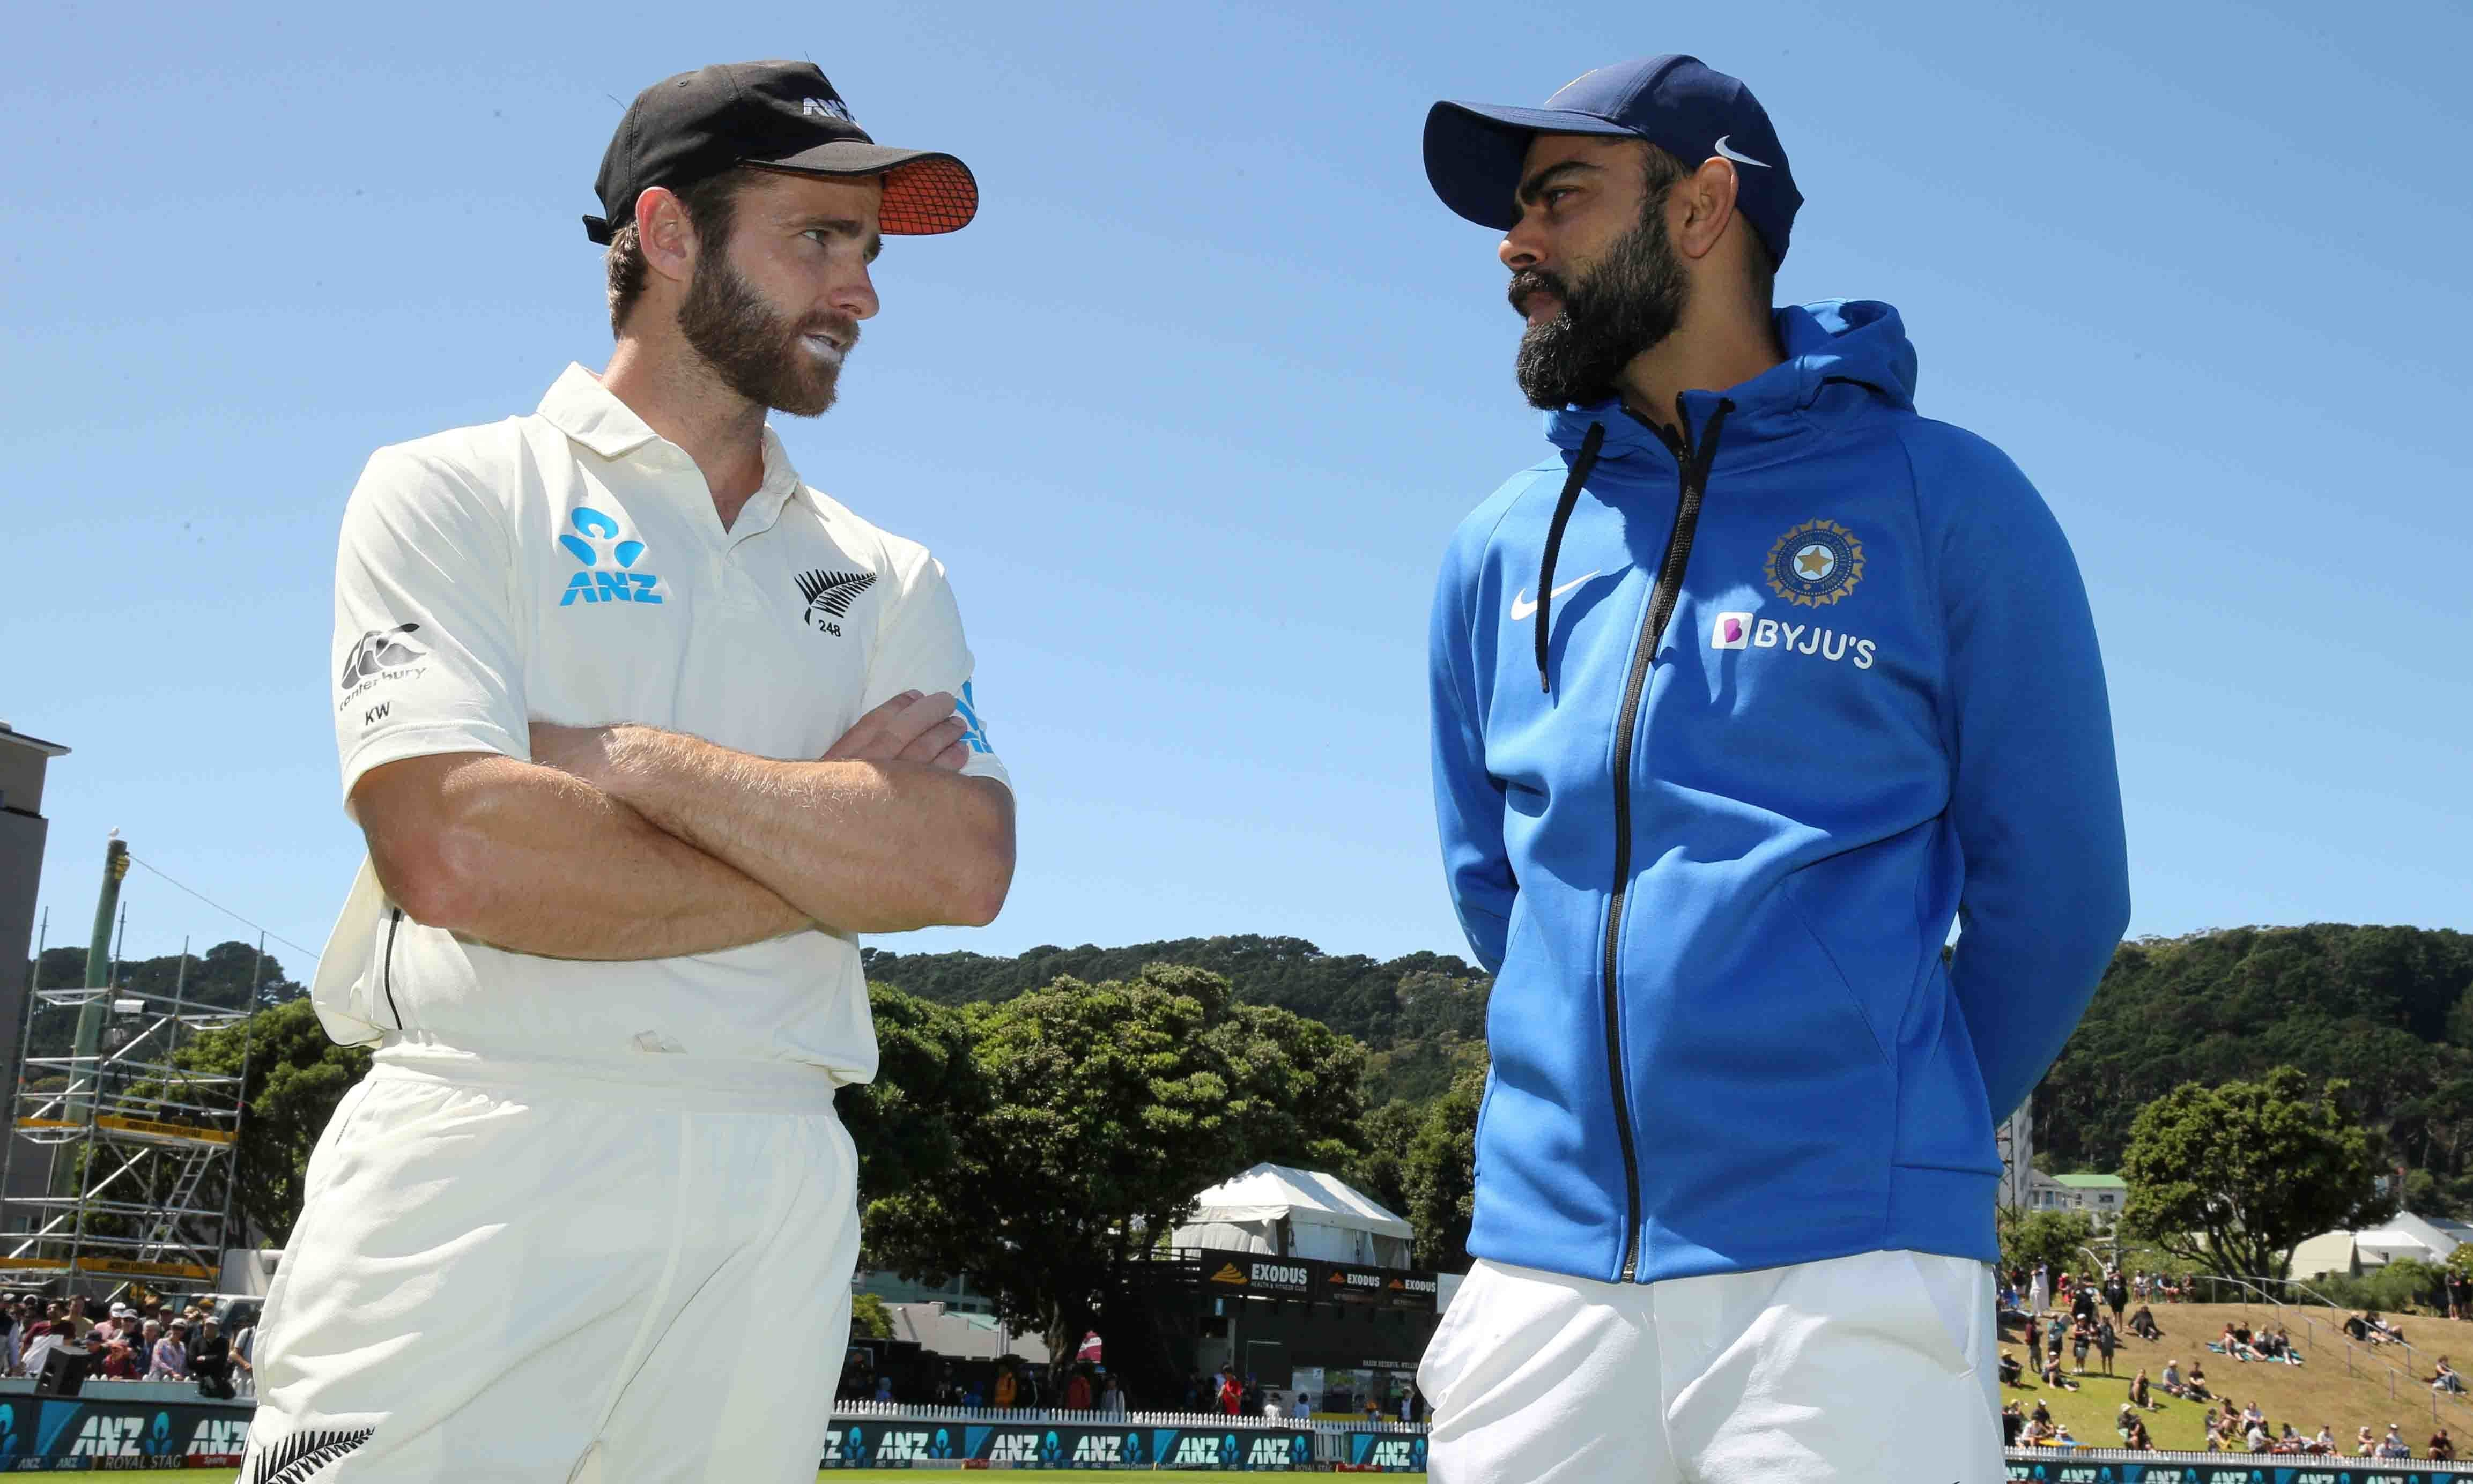 New Zealand's Kane Williamson talks to India's Virat Kohli after New Zealand beat India in a test match at Basin Reserve on February 24. — Reuters